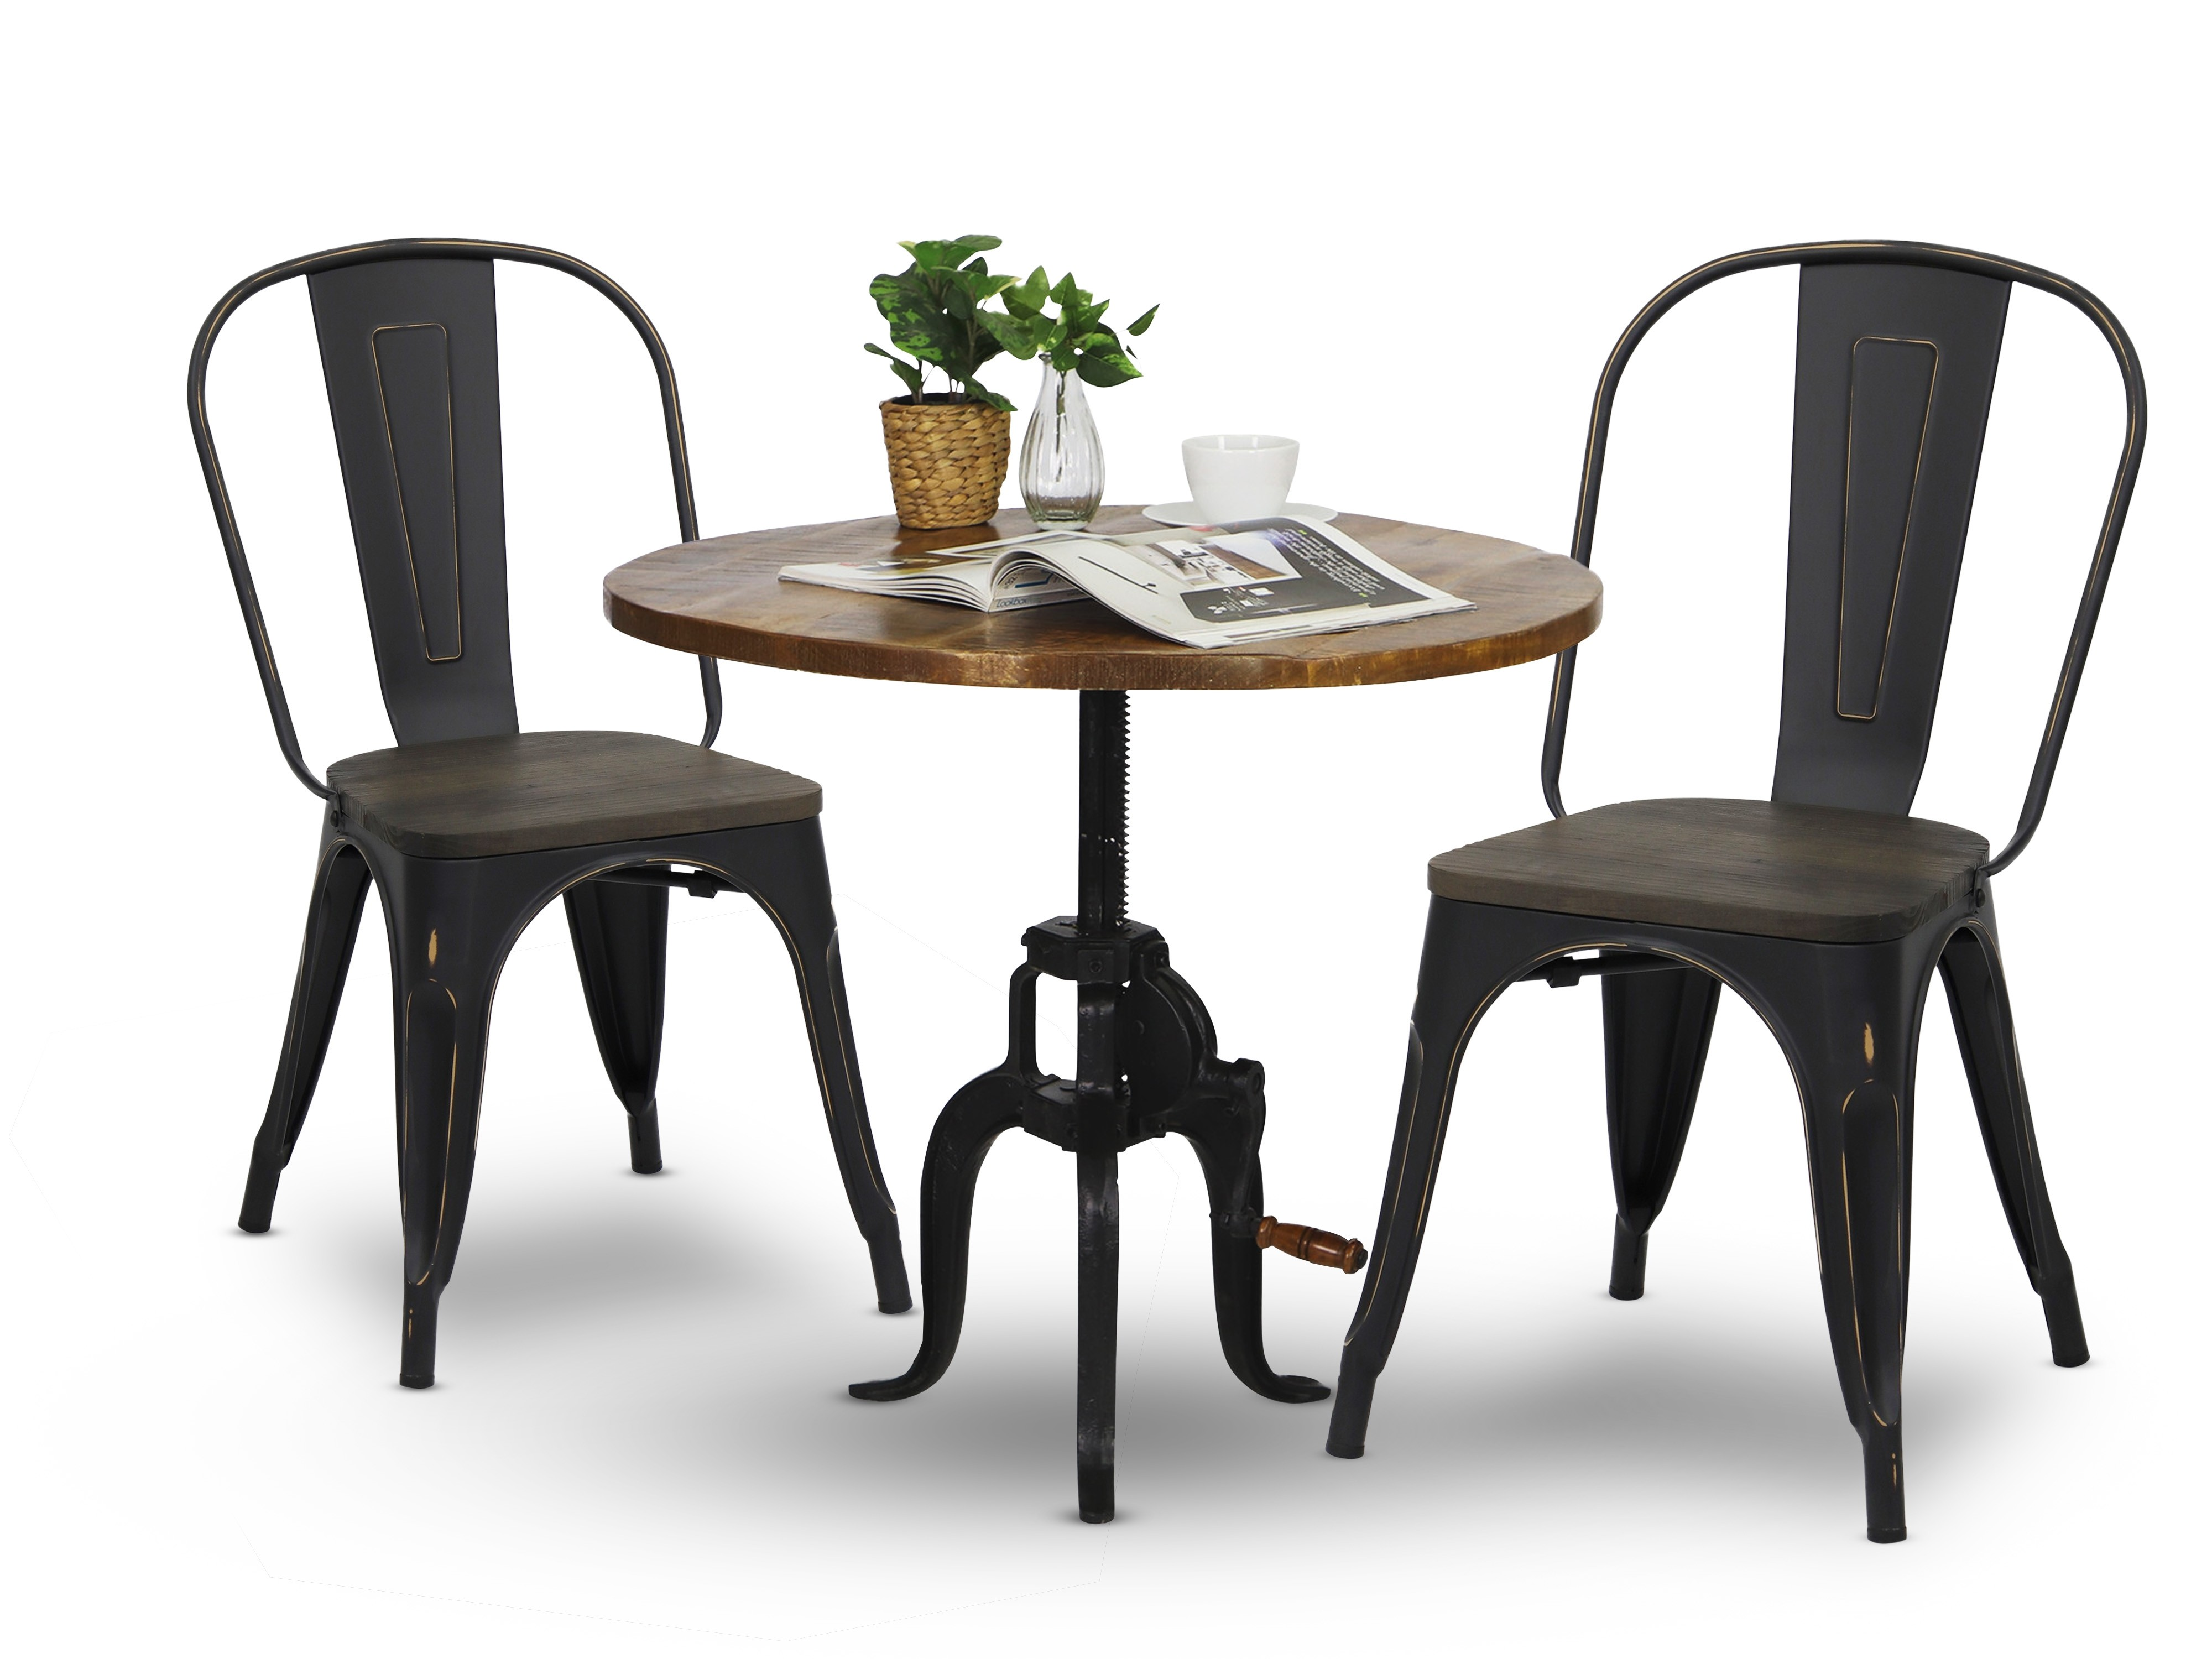 Beanie Round Dining Table With Retro Metal Chair In Antique Black Set (1+2